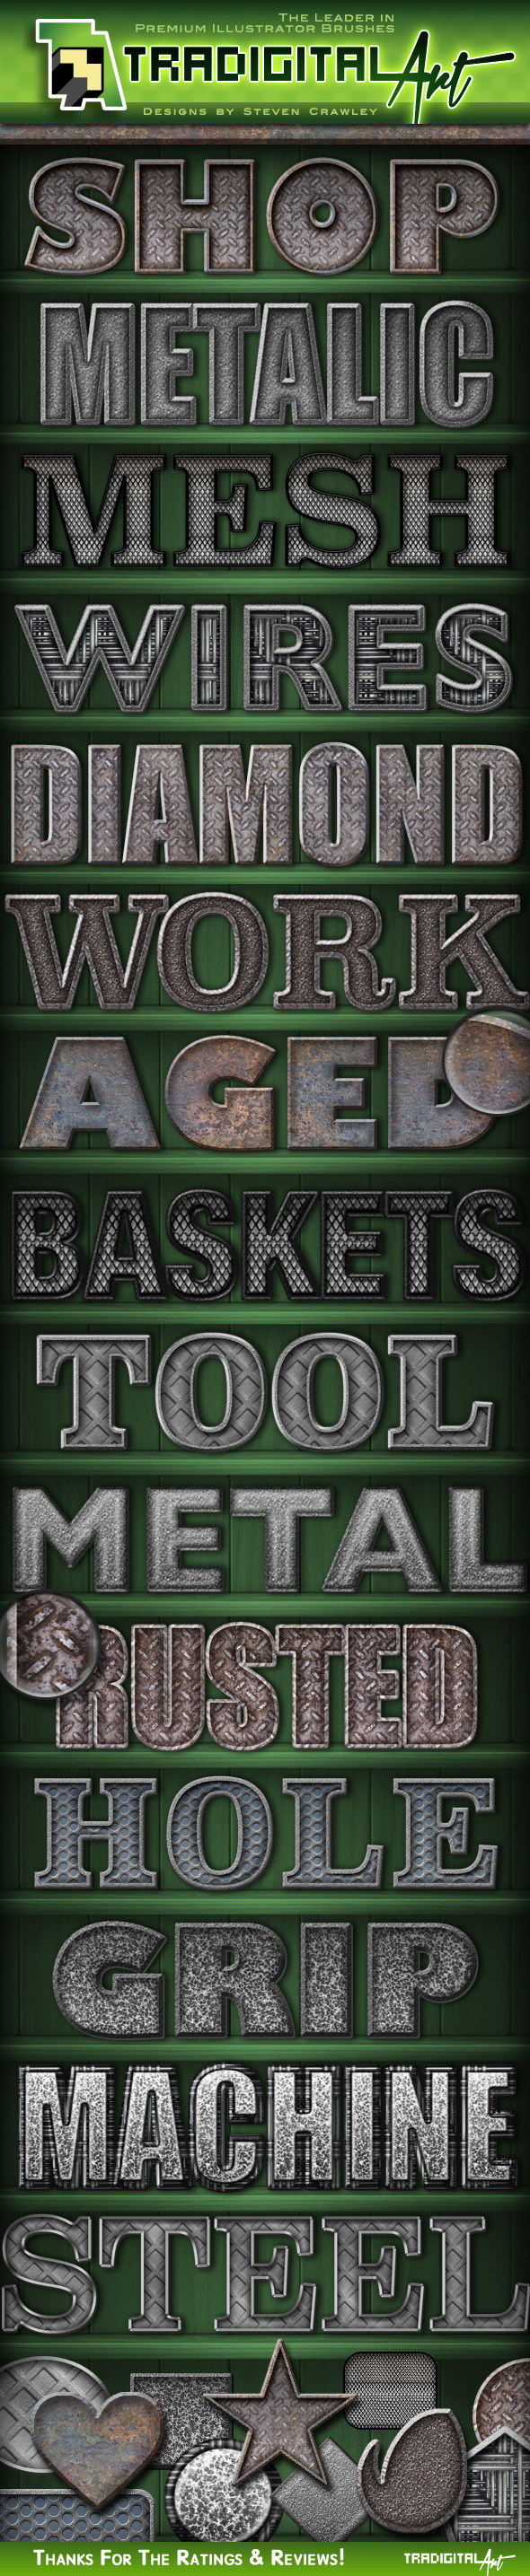 Metal Shop PS Styles - Text Effects Styles